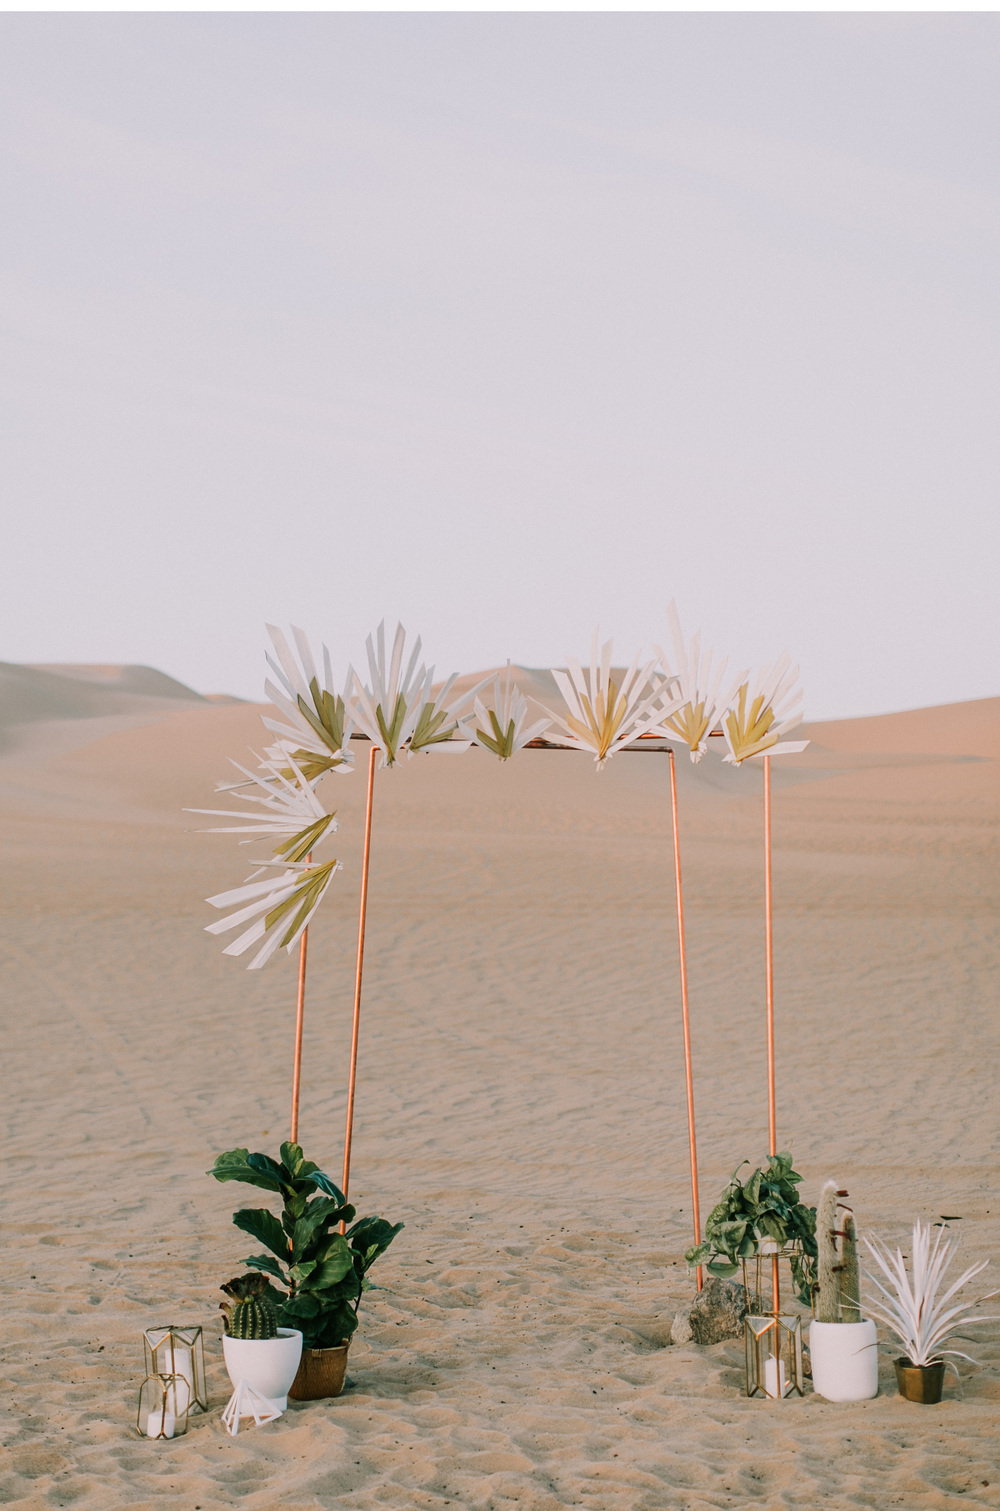 Desert-Wedding-Free-People-Wedding-Natalie-Schutt-Photography_04.jpg